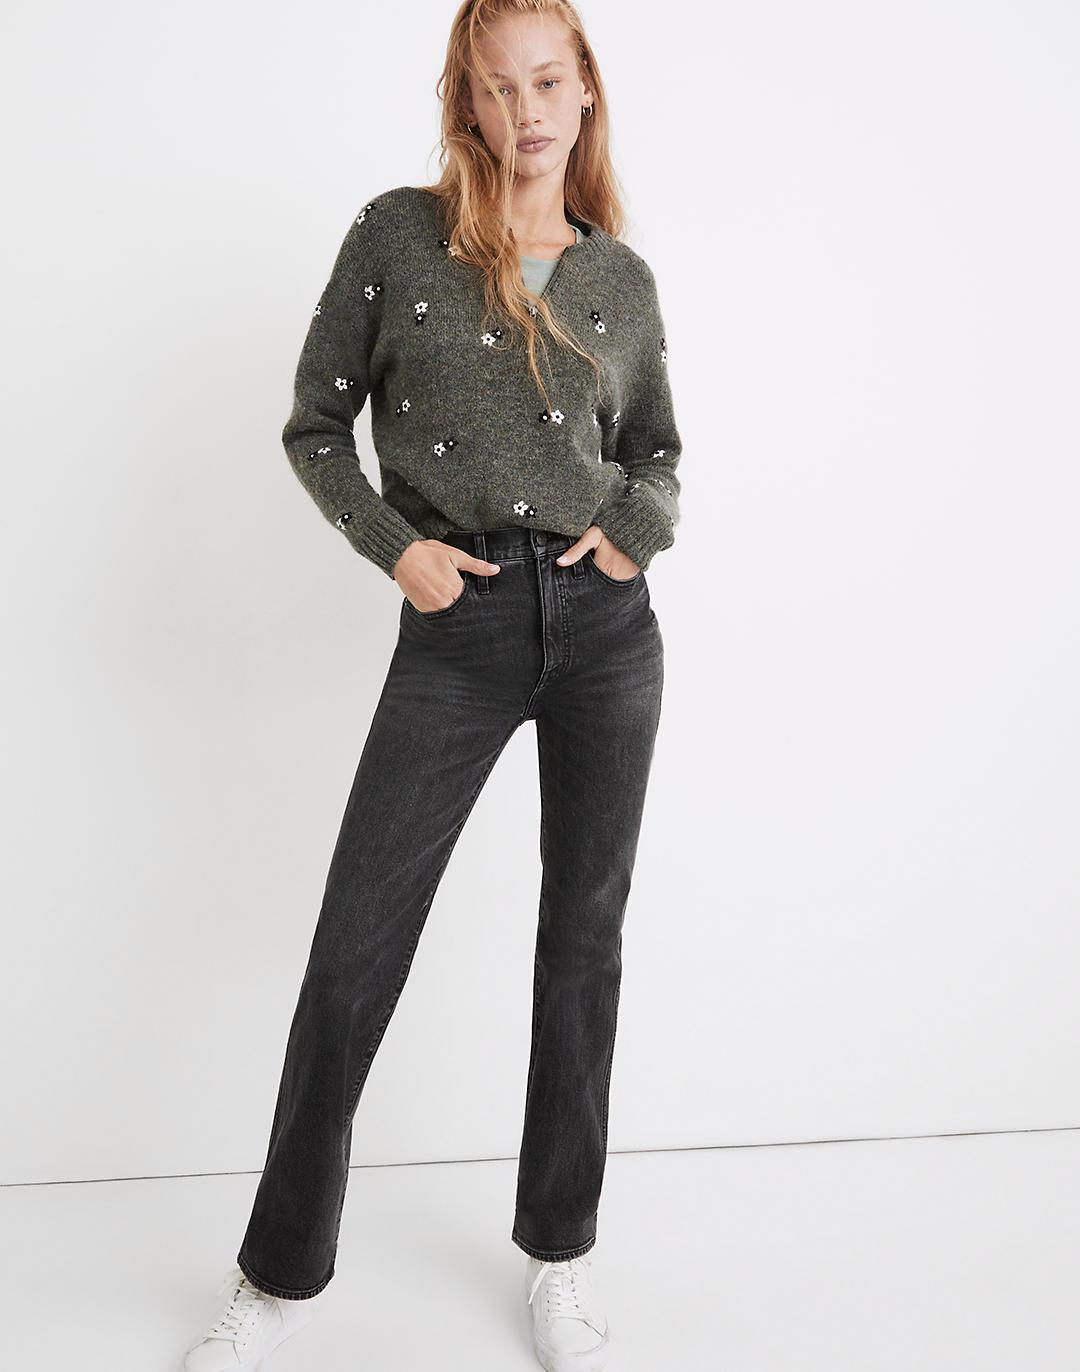 High-Rise Bootcut Jeans in Lindale Wash